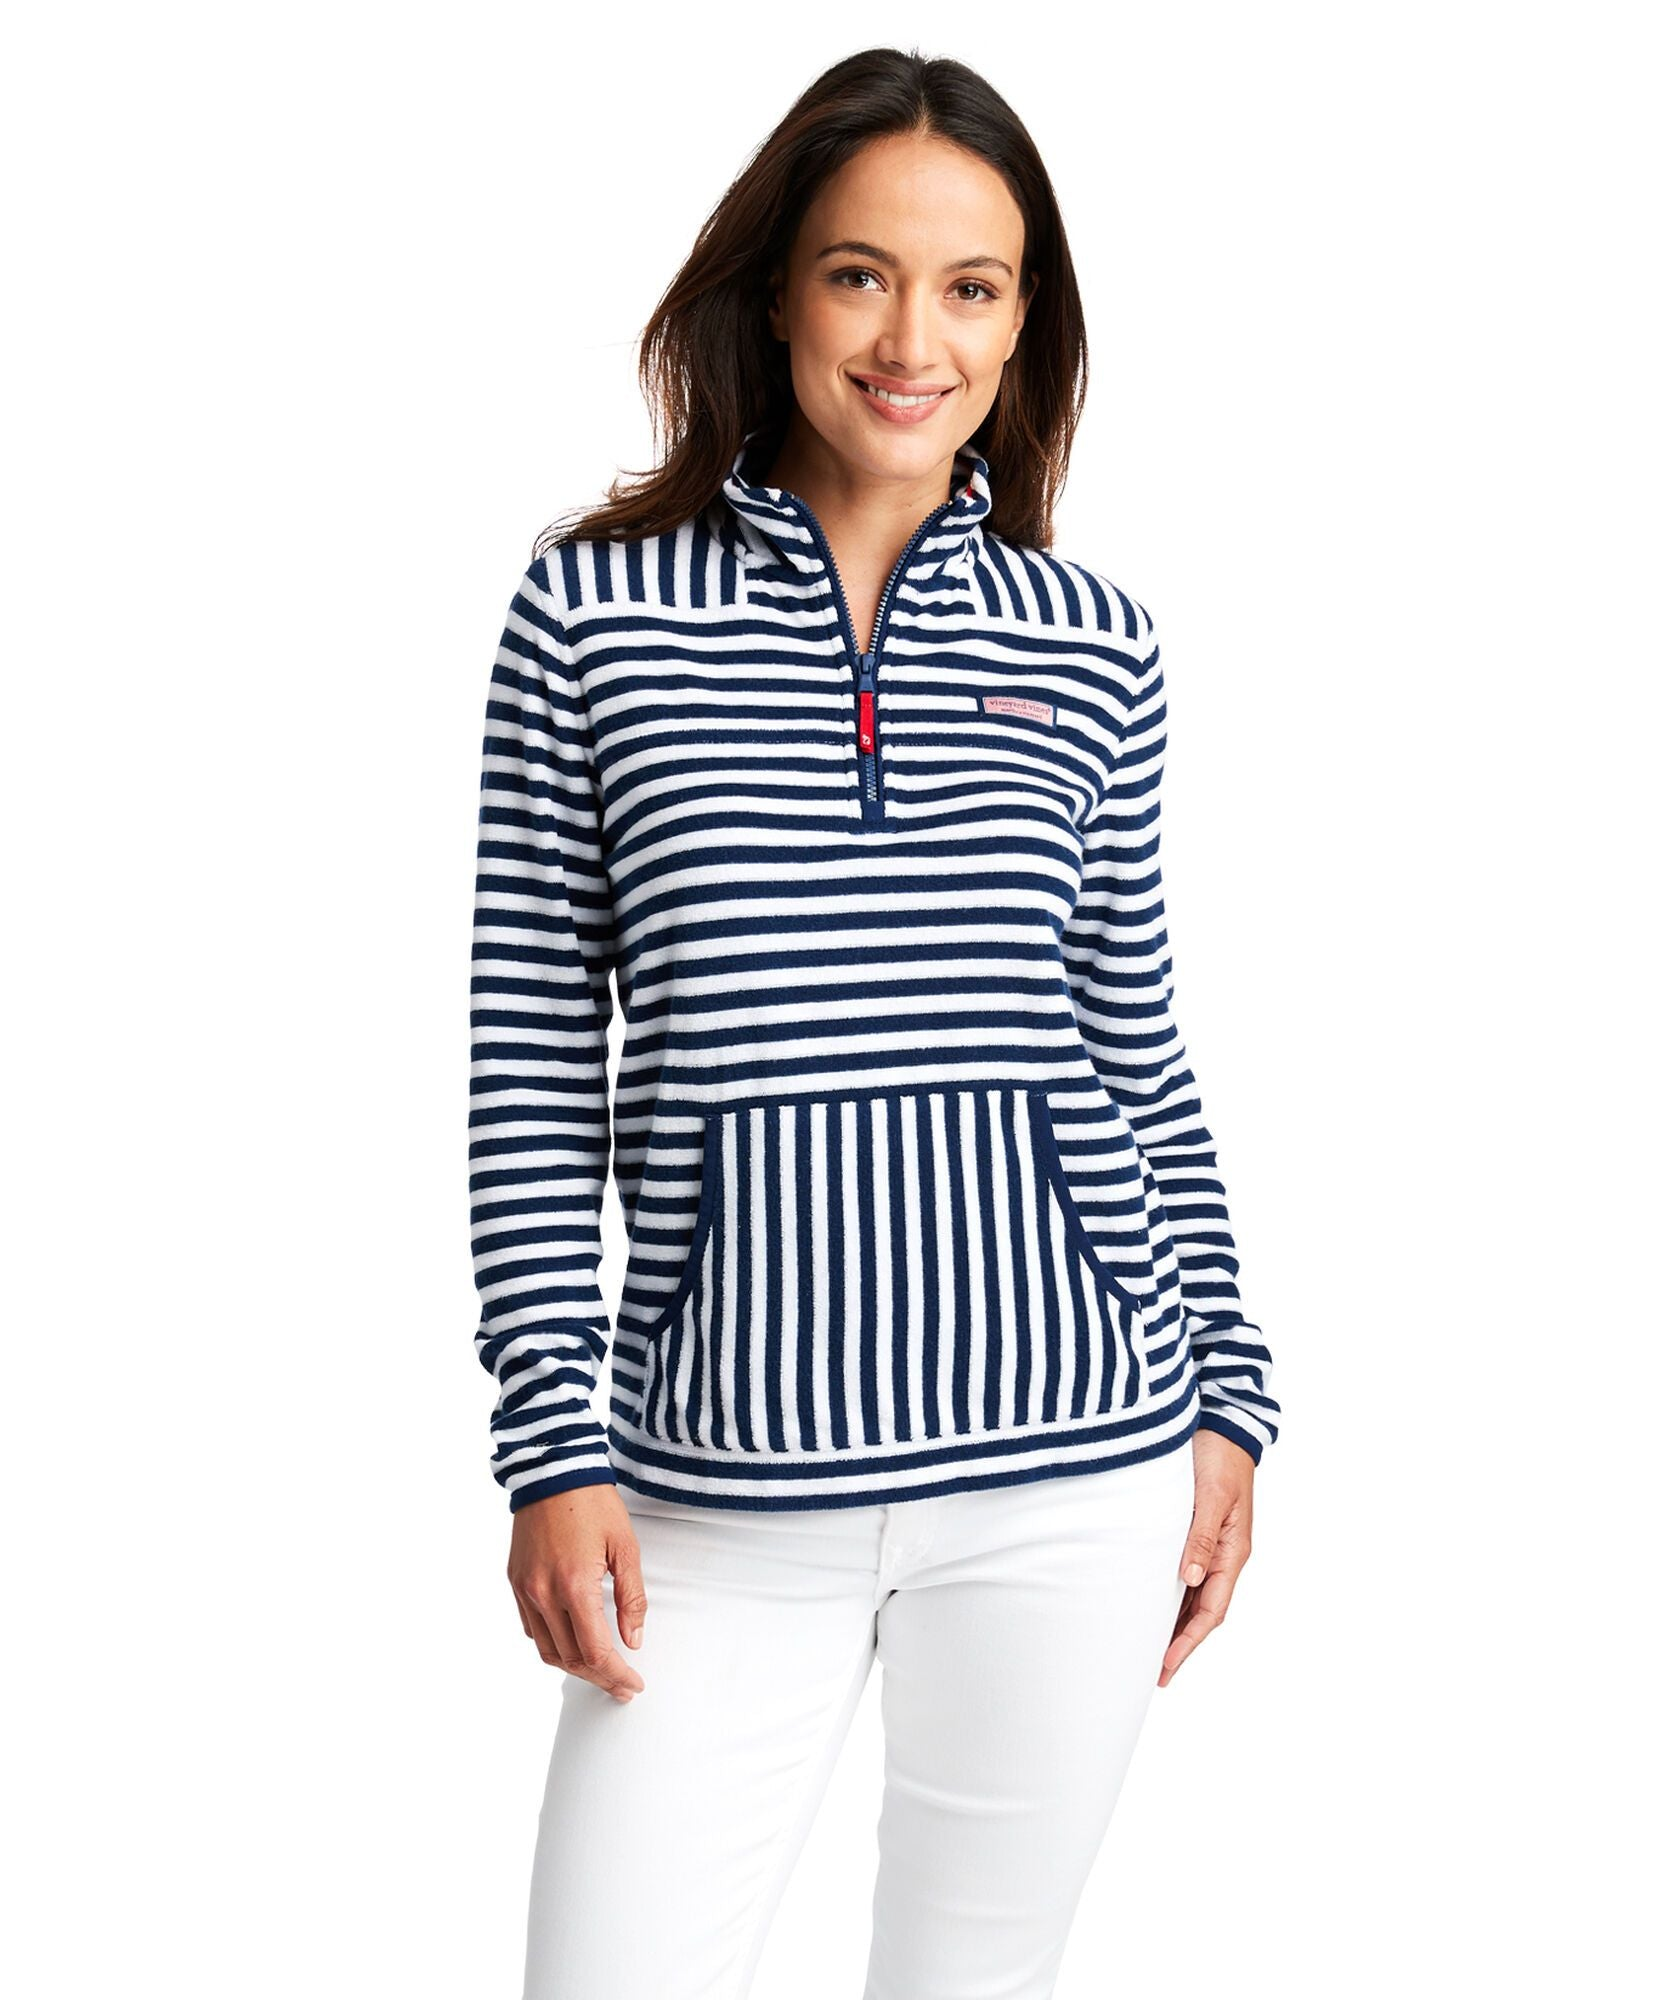 Striped Terry Towel Relax Shep Shirt